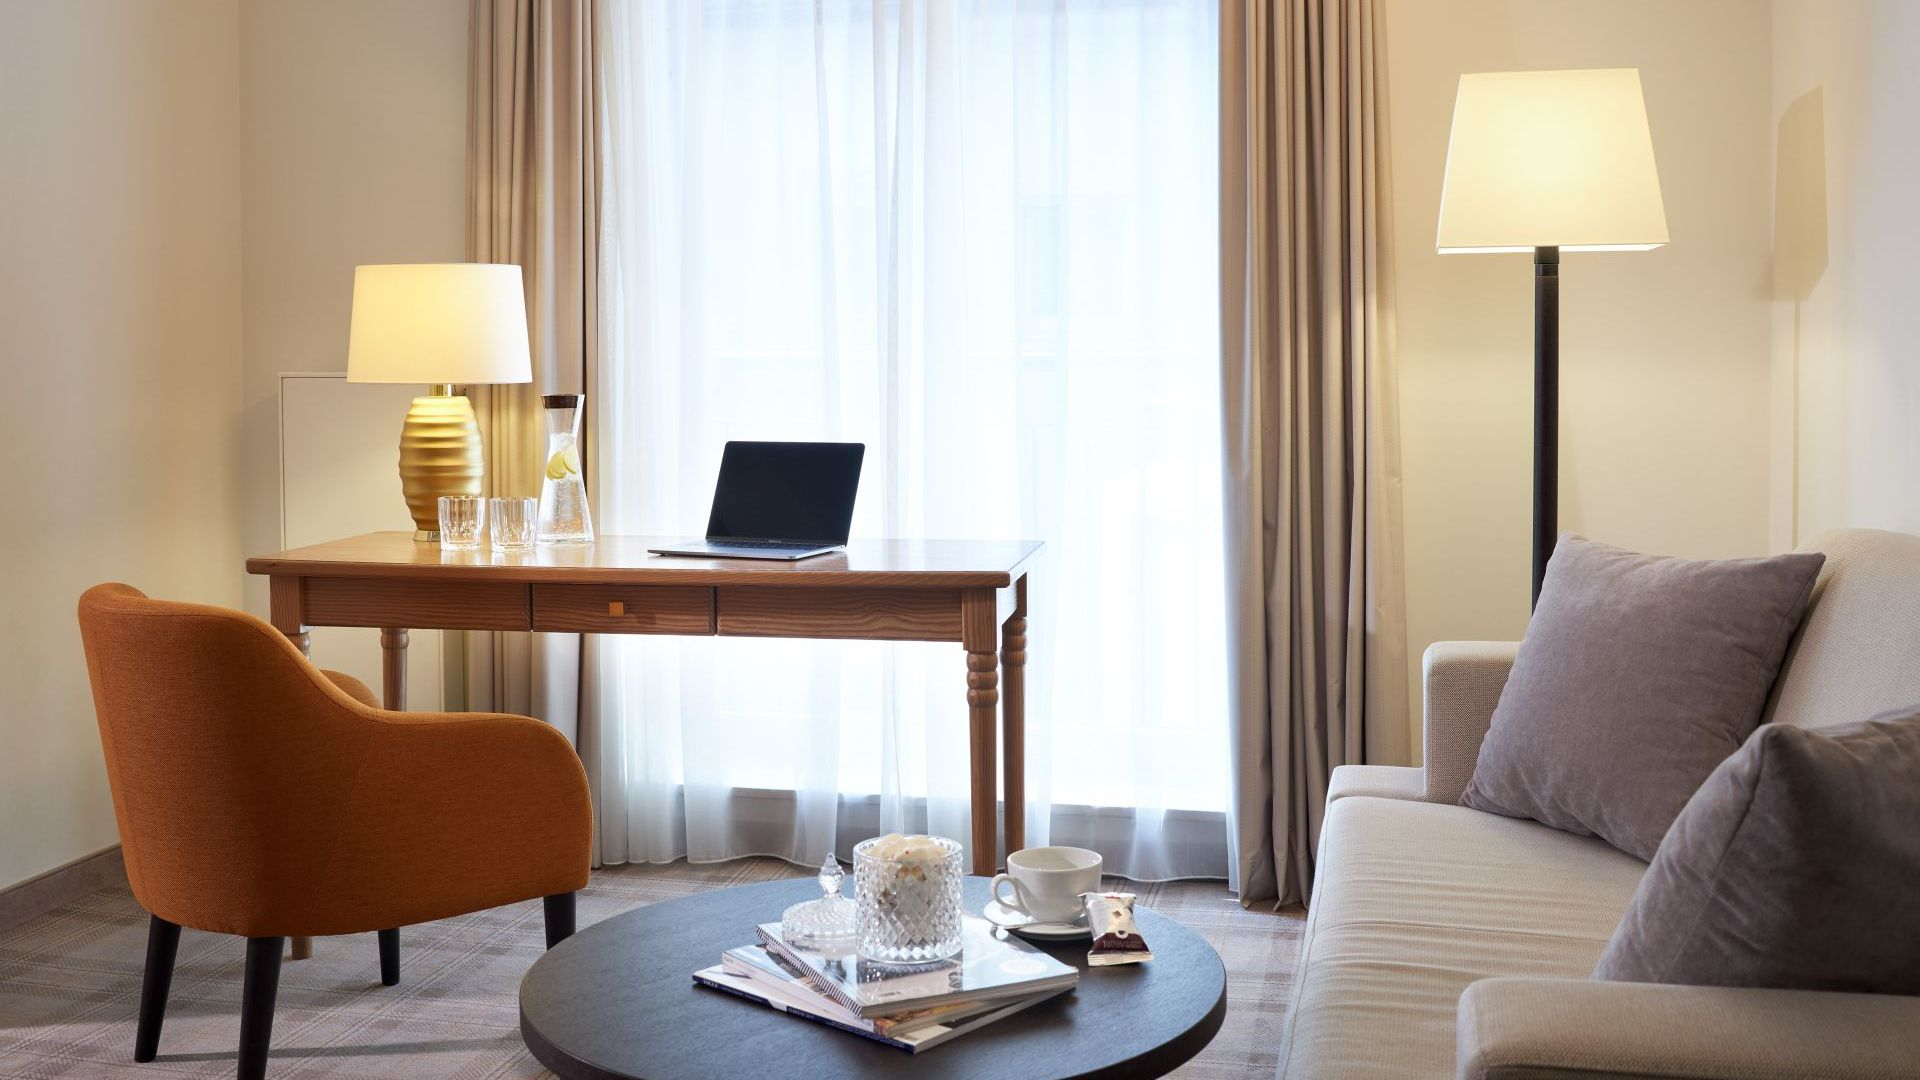 Classik-Hotel-Collection-Hackescher-Markt-Room-L-Living-Room